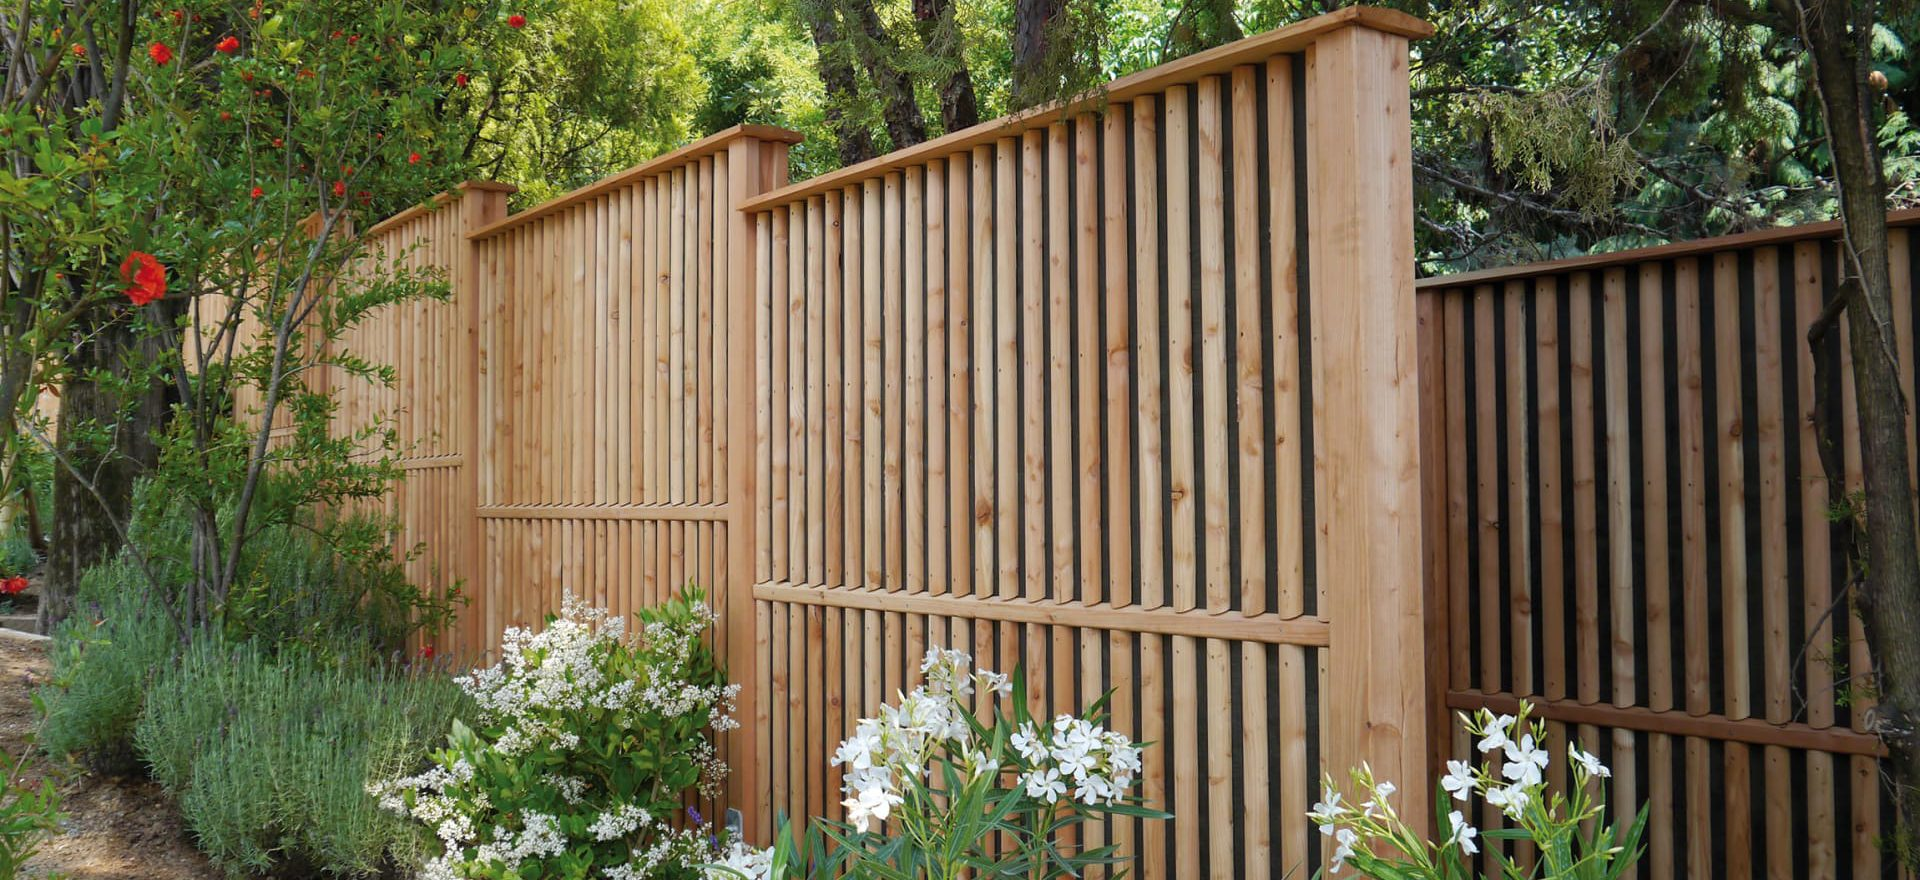 Deck and Fence 5